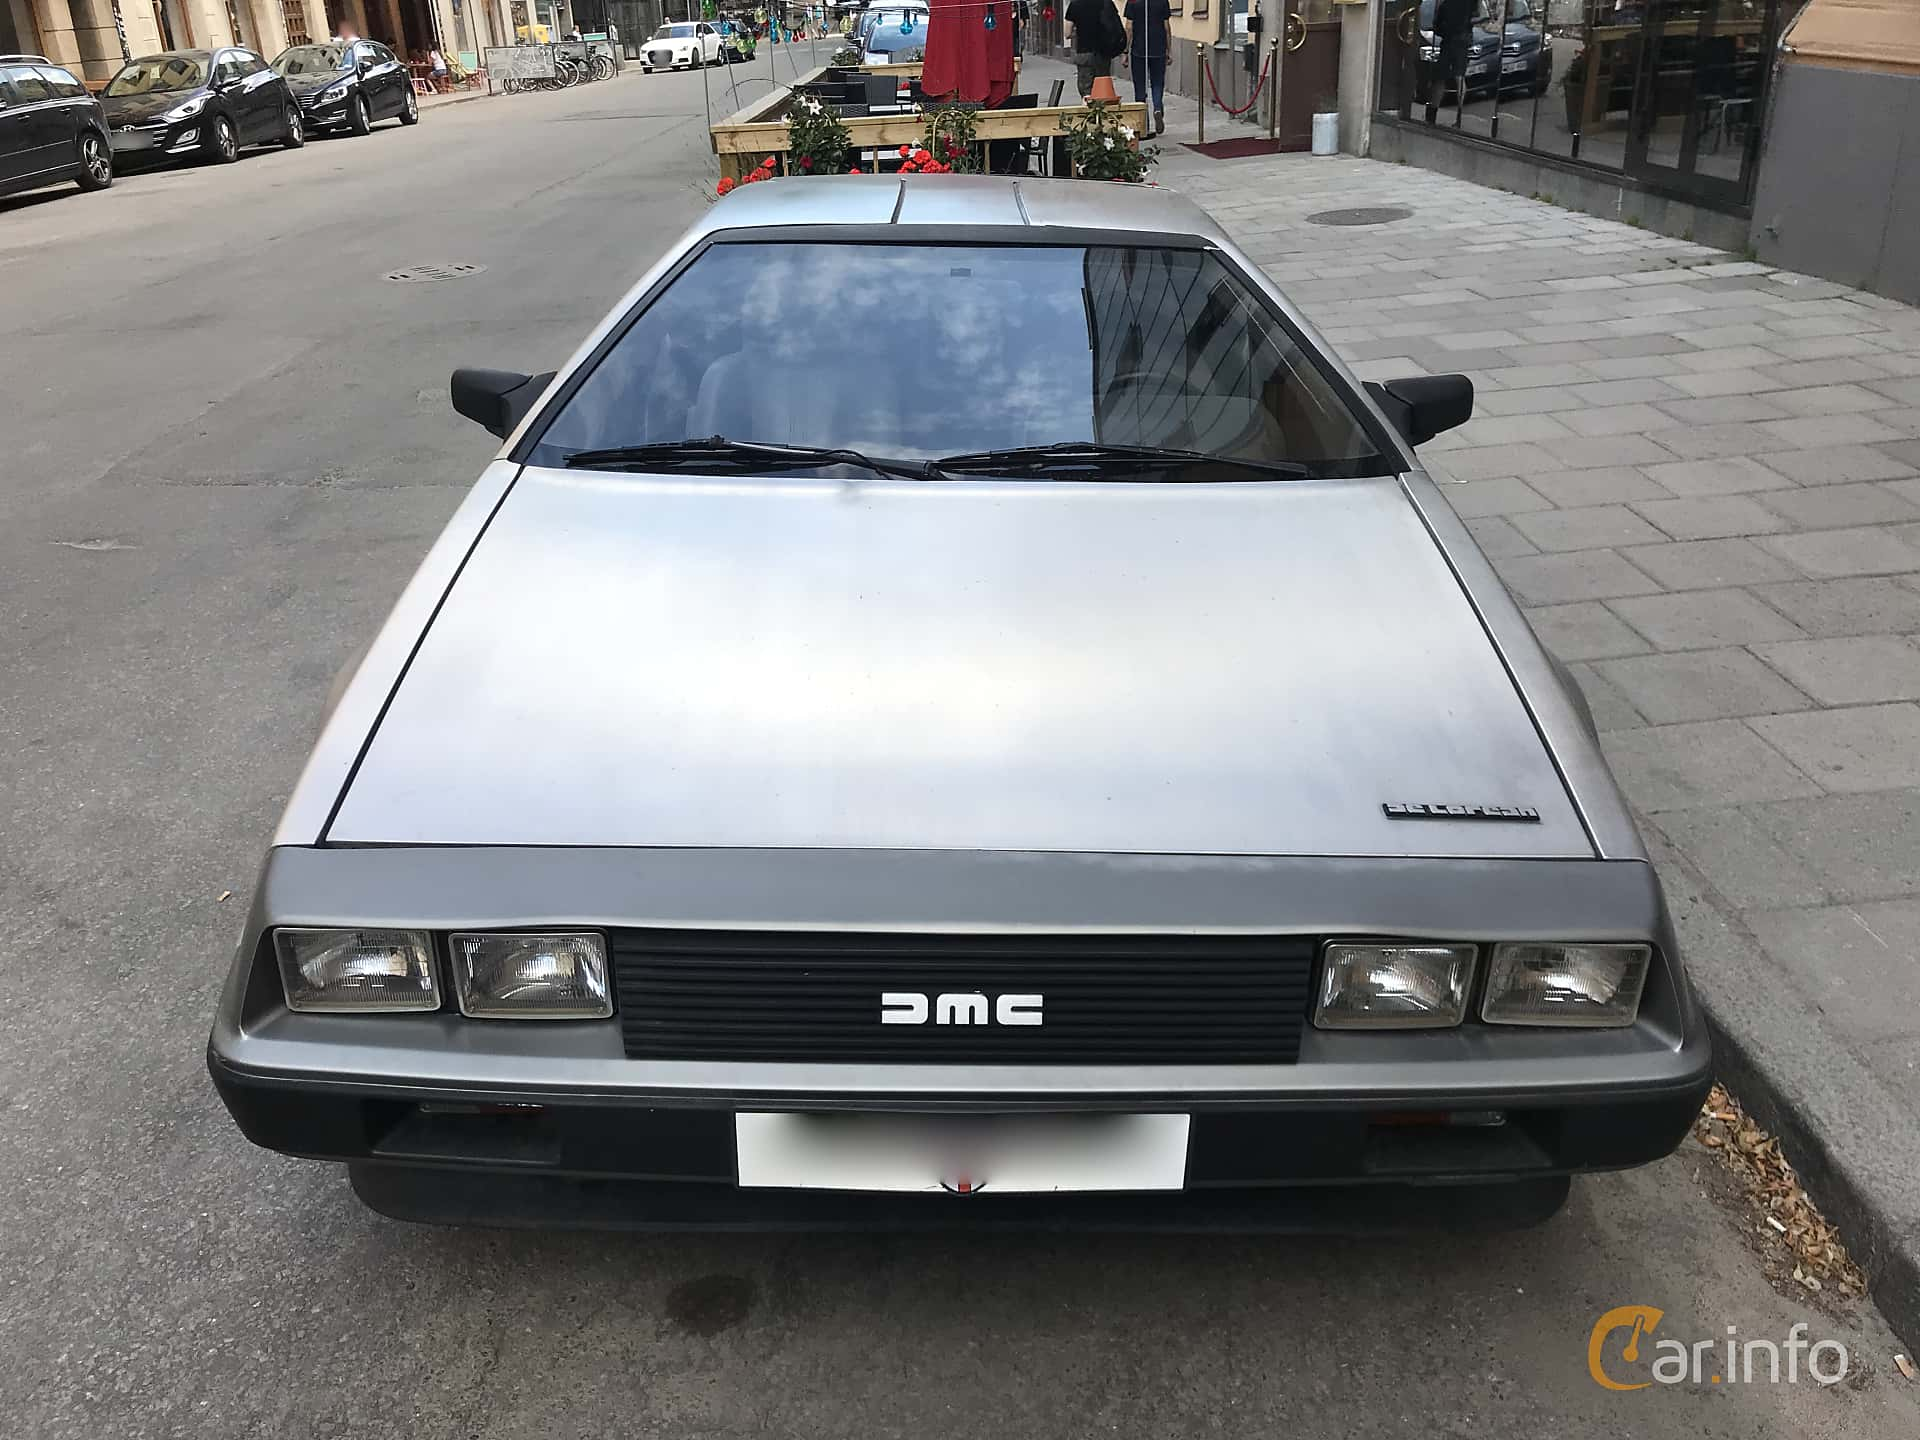 DeLorean DMC-12 2.8 V6 Automatic, 132hp, 1982